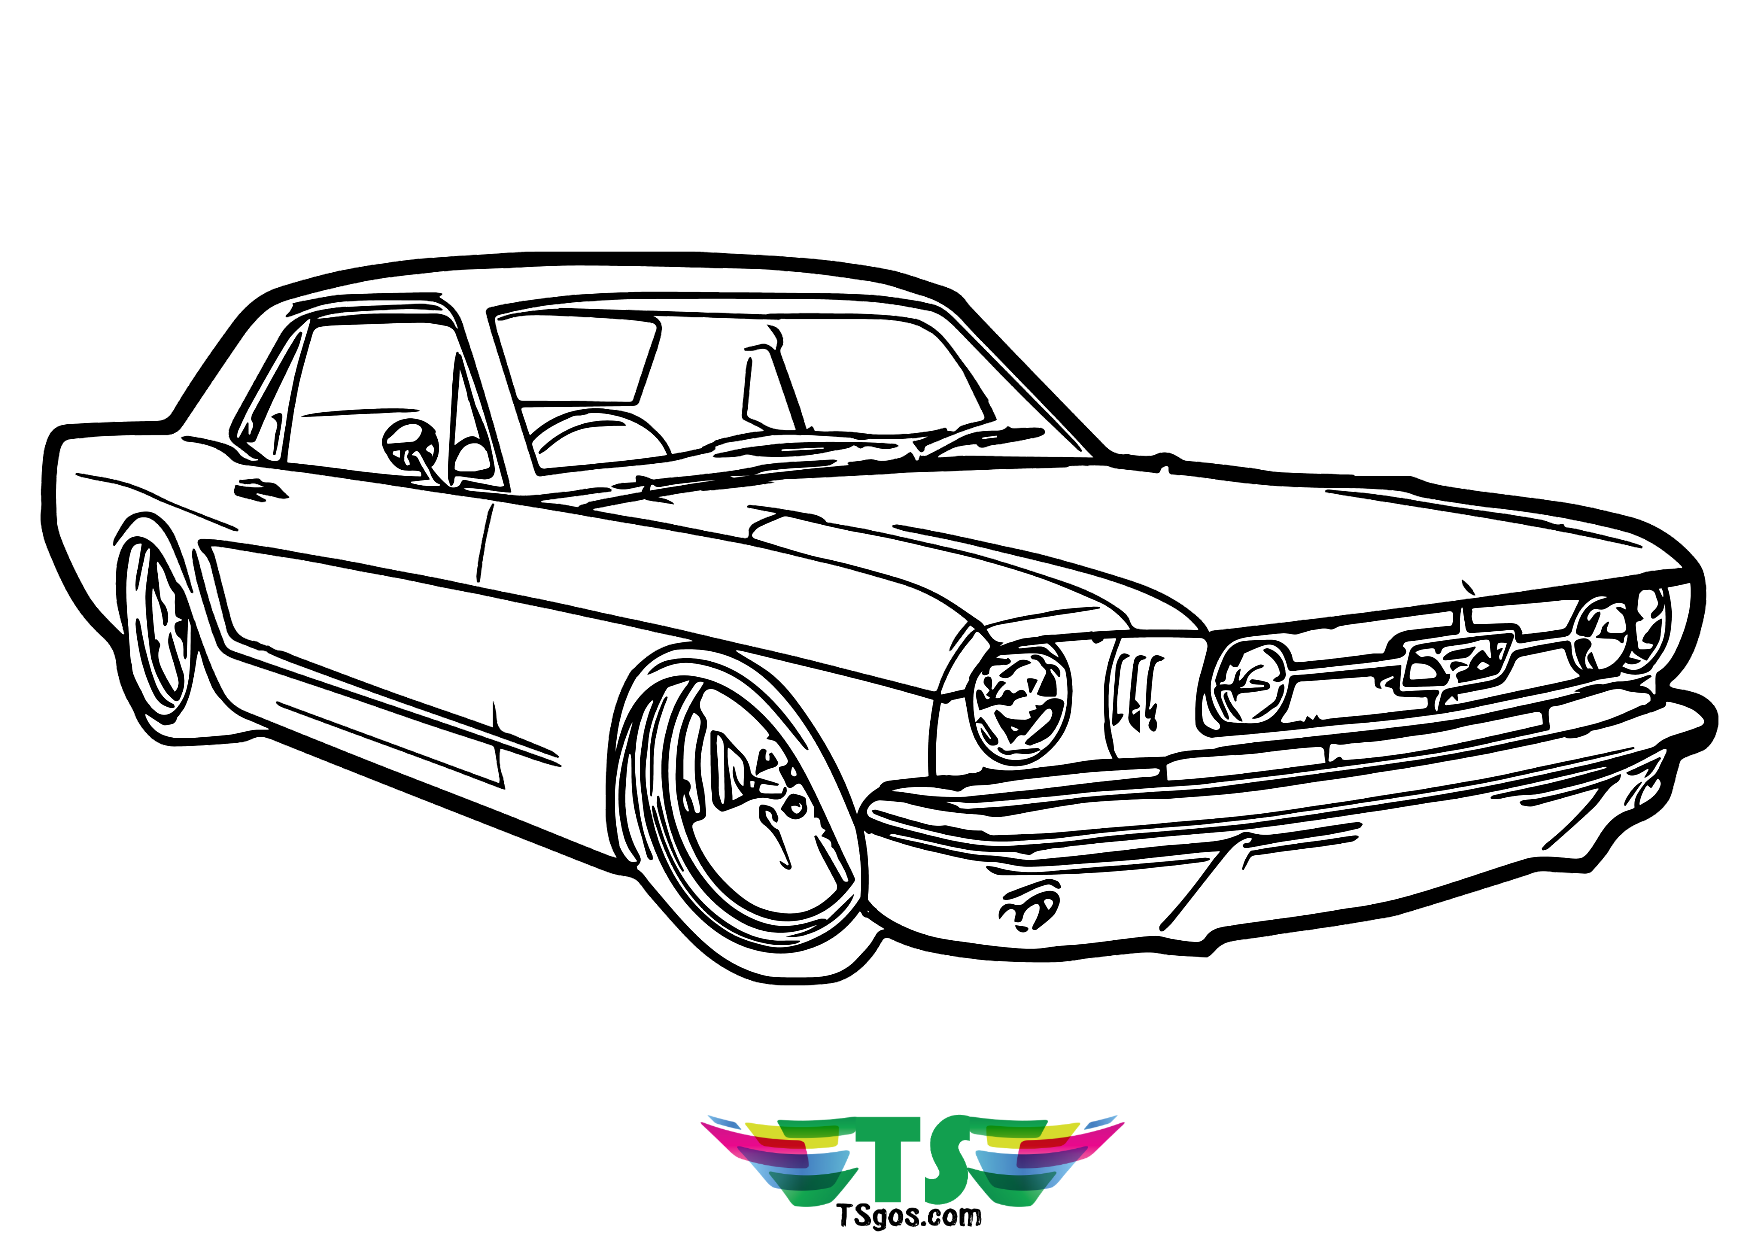 Muscle Car coloring page for kids Wallpaper